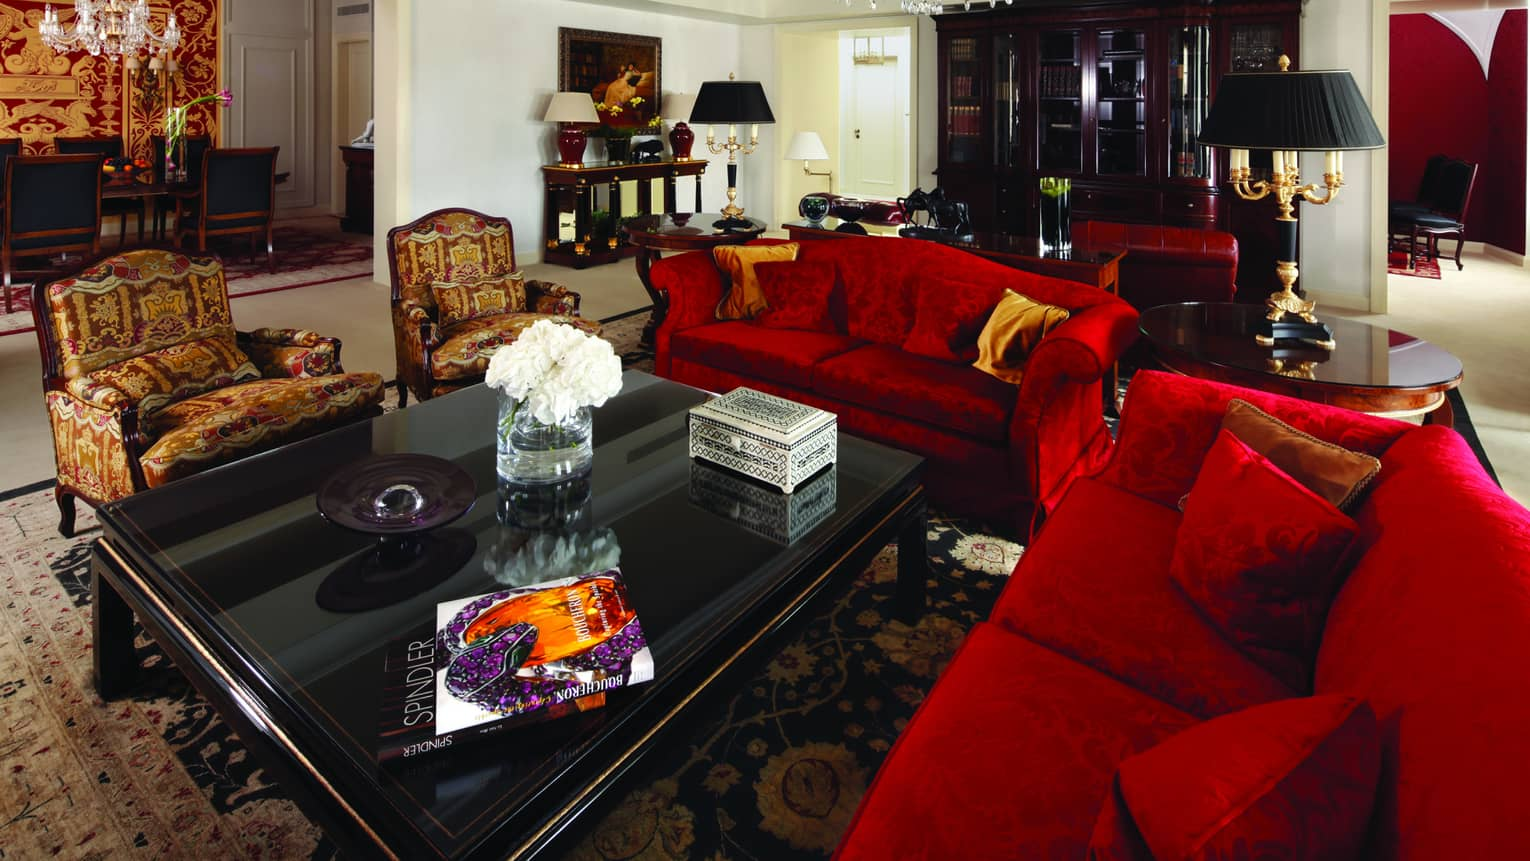 Presidential Suite with red satin sofas, red-and-gold armchairs, large black coffee table with books, flowers